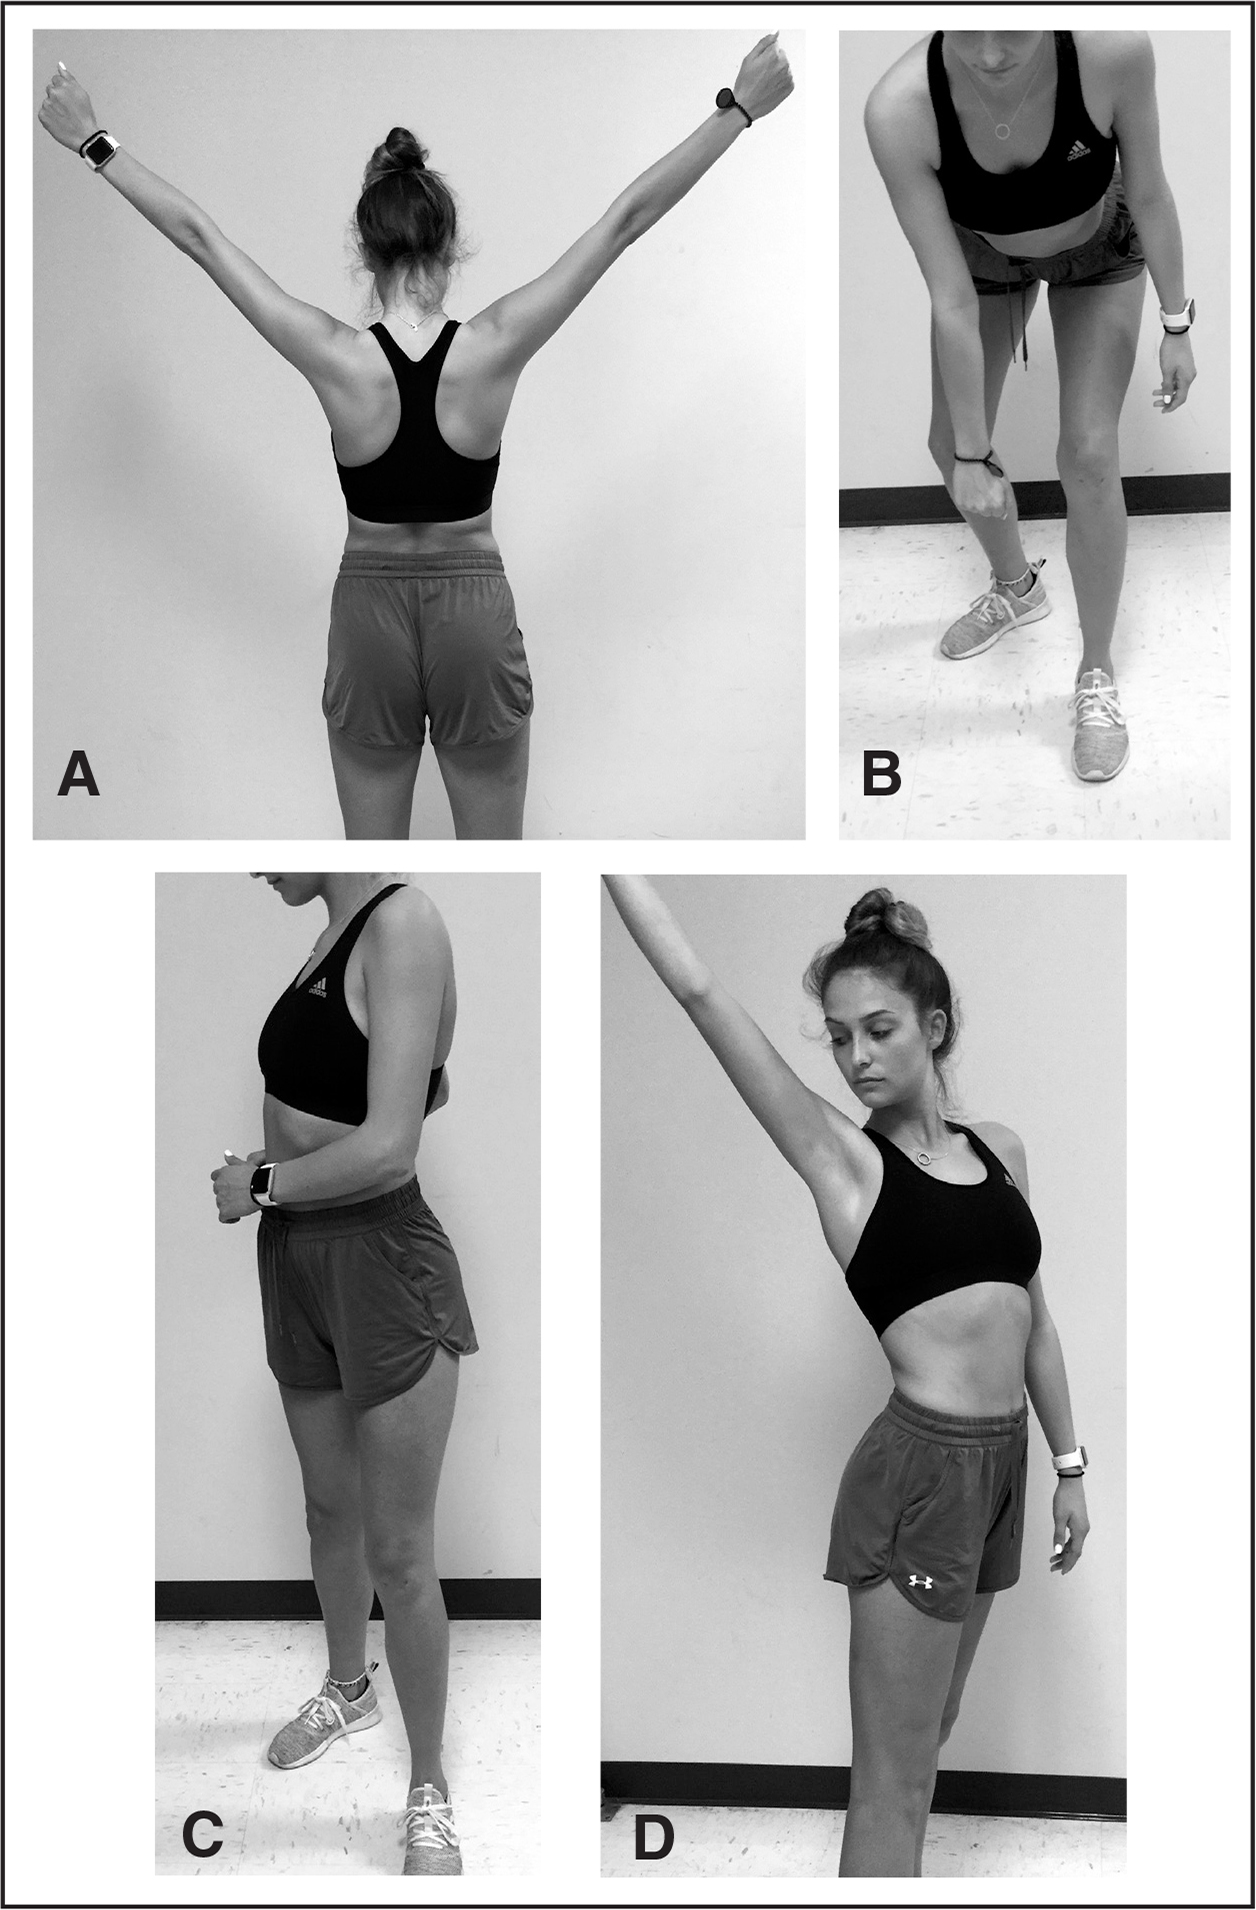 "(A) Long lever ""Y"" exercise. Short lever lawnmower exercise (B) beginning with trunk and knee flexion and (C) ending with patient standing erect while using trunk rotation to achieve scapular retraction. (D) Combination of long lever exercise with trunk rotation."